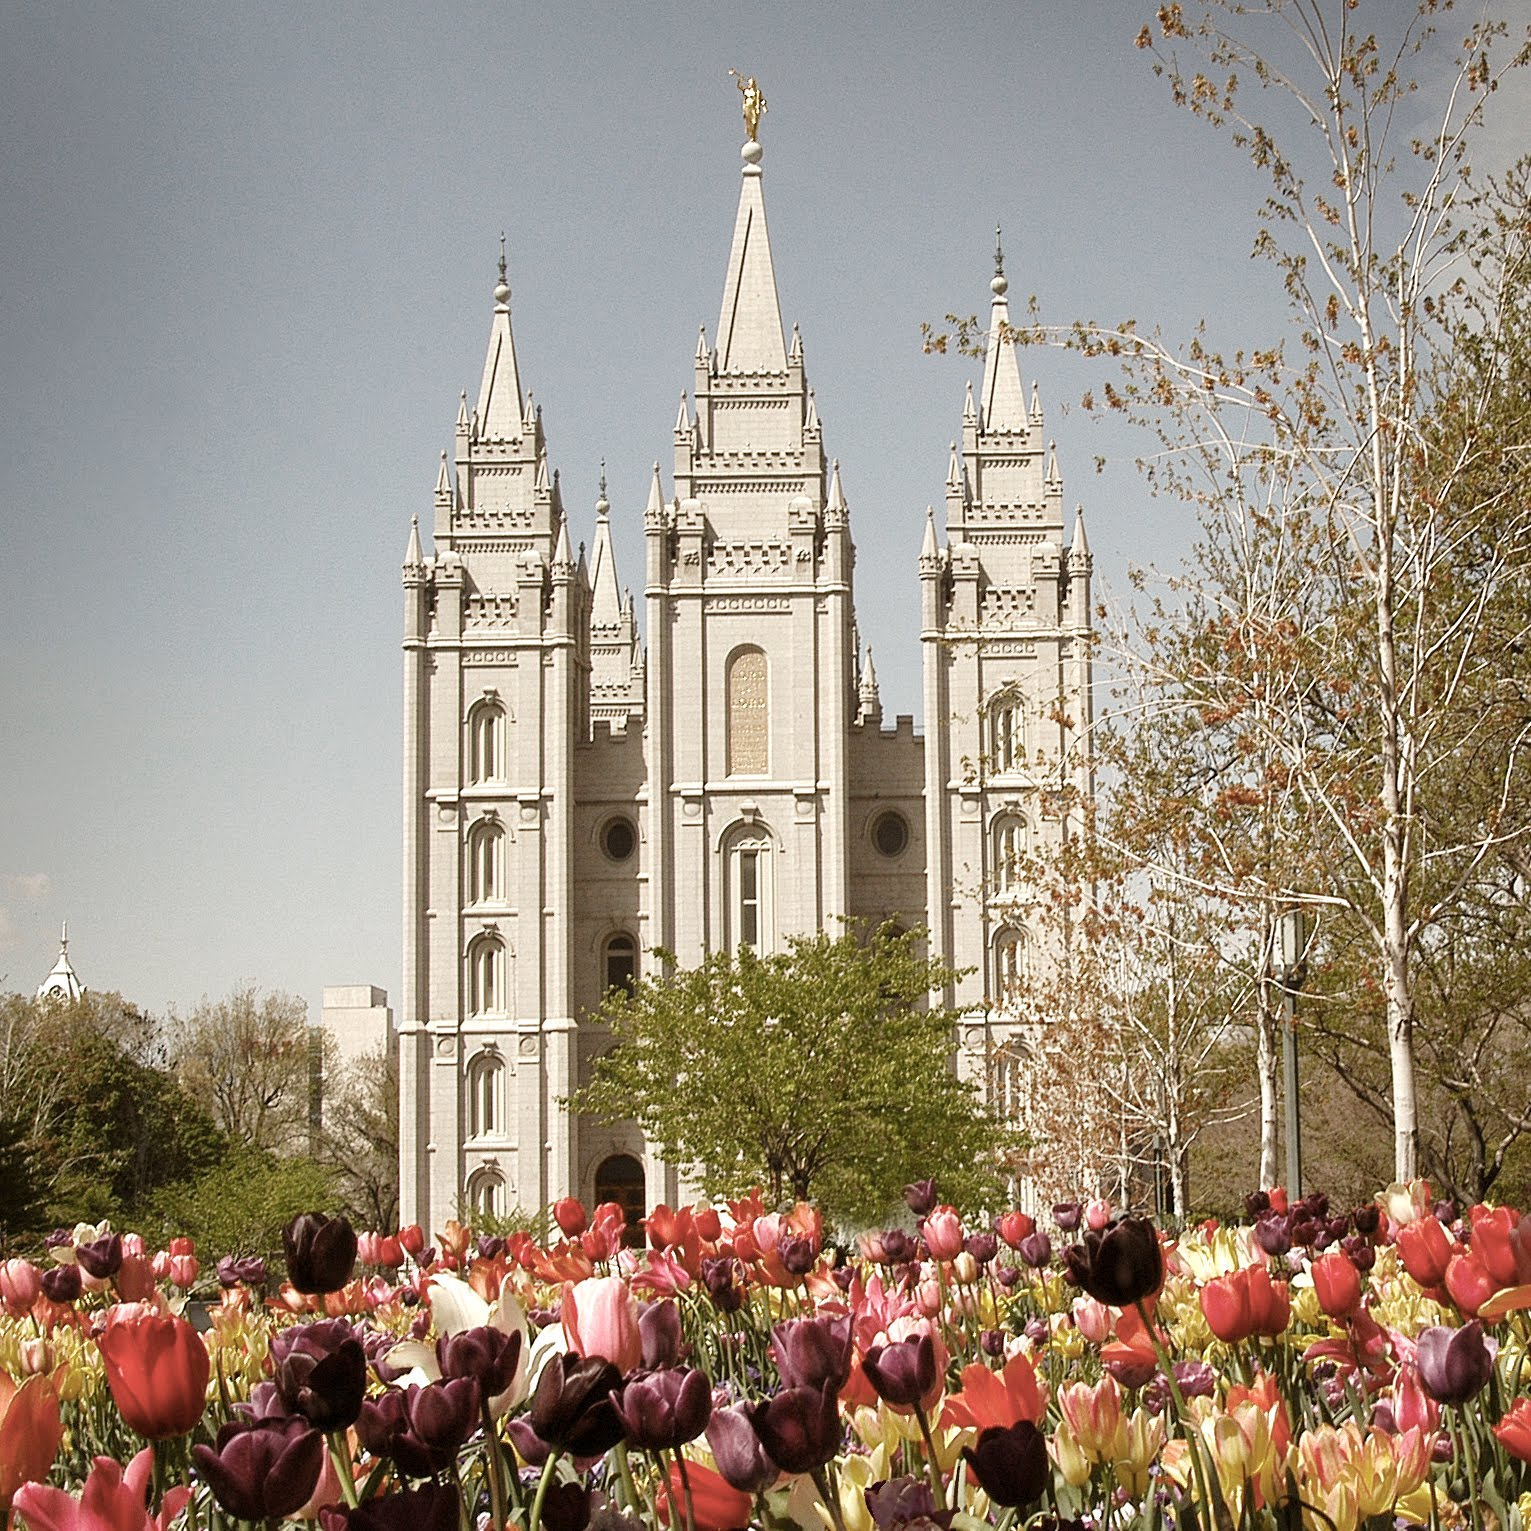 Learn more about the LDS faith